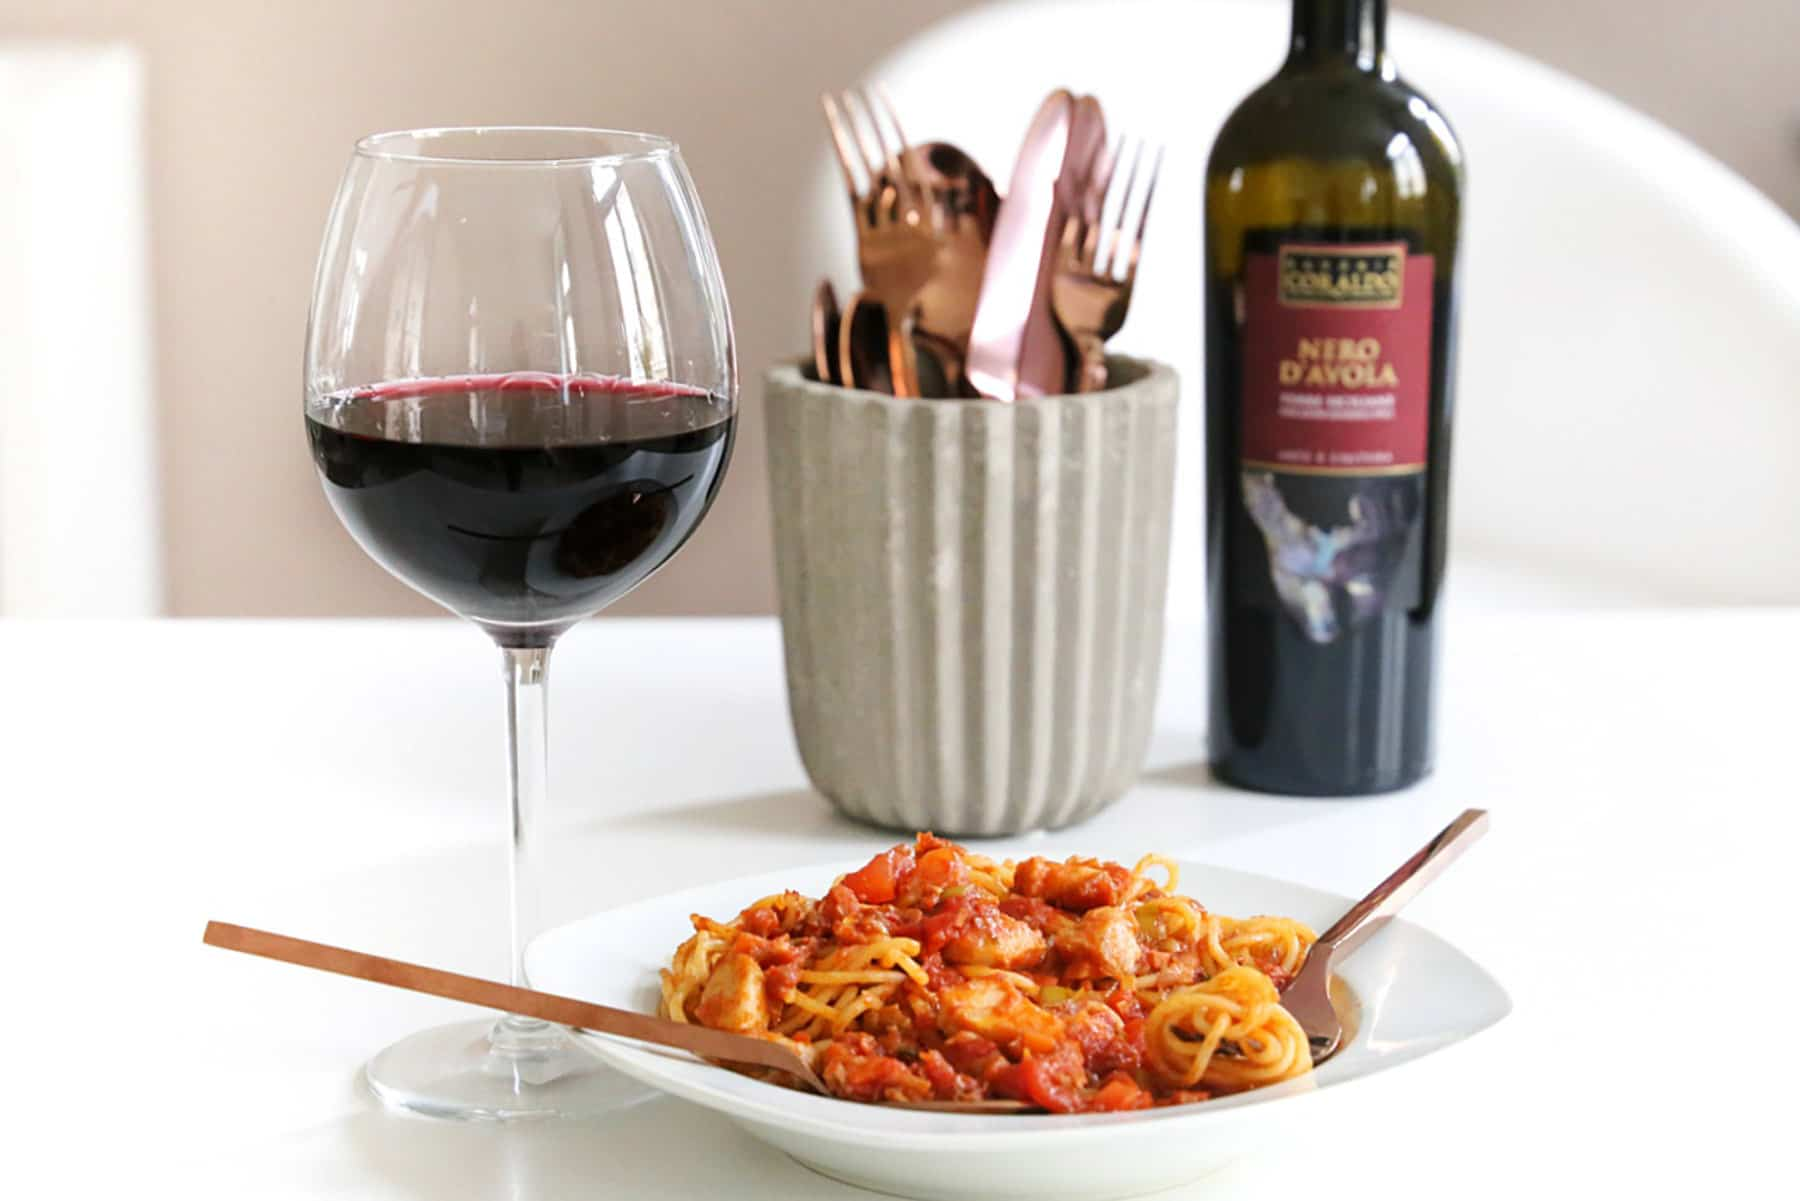 rezept spaghetti fisch bolognese mit rotwein. Black Bedroom Furniture Sets. Home Design Ideas